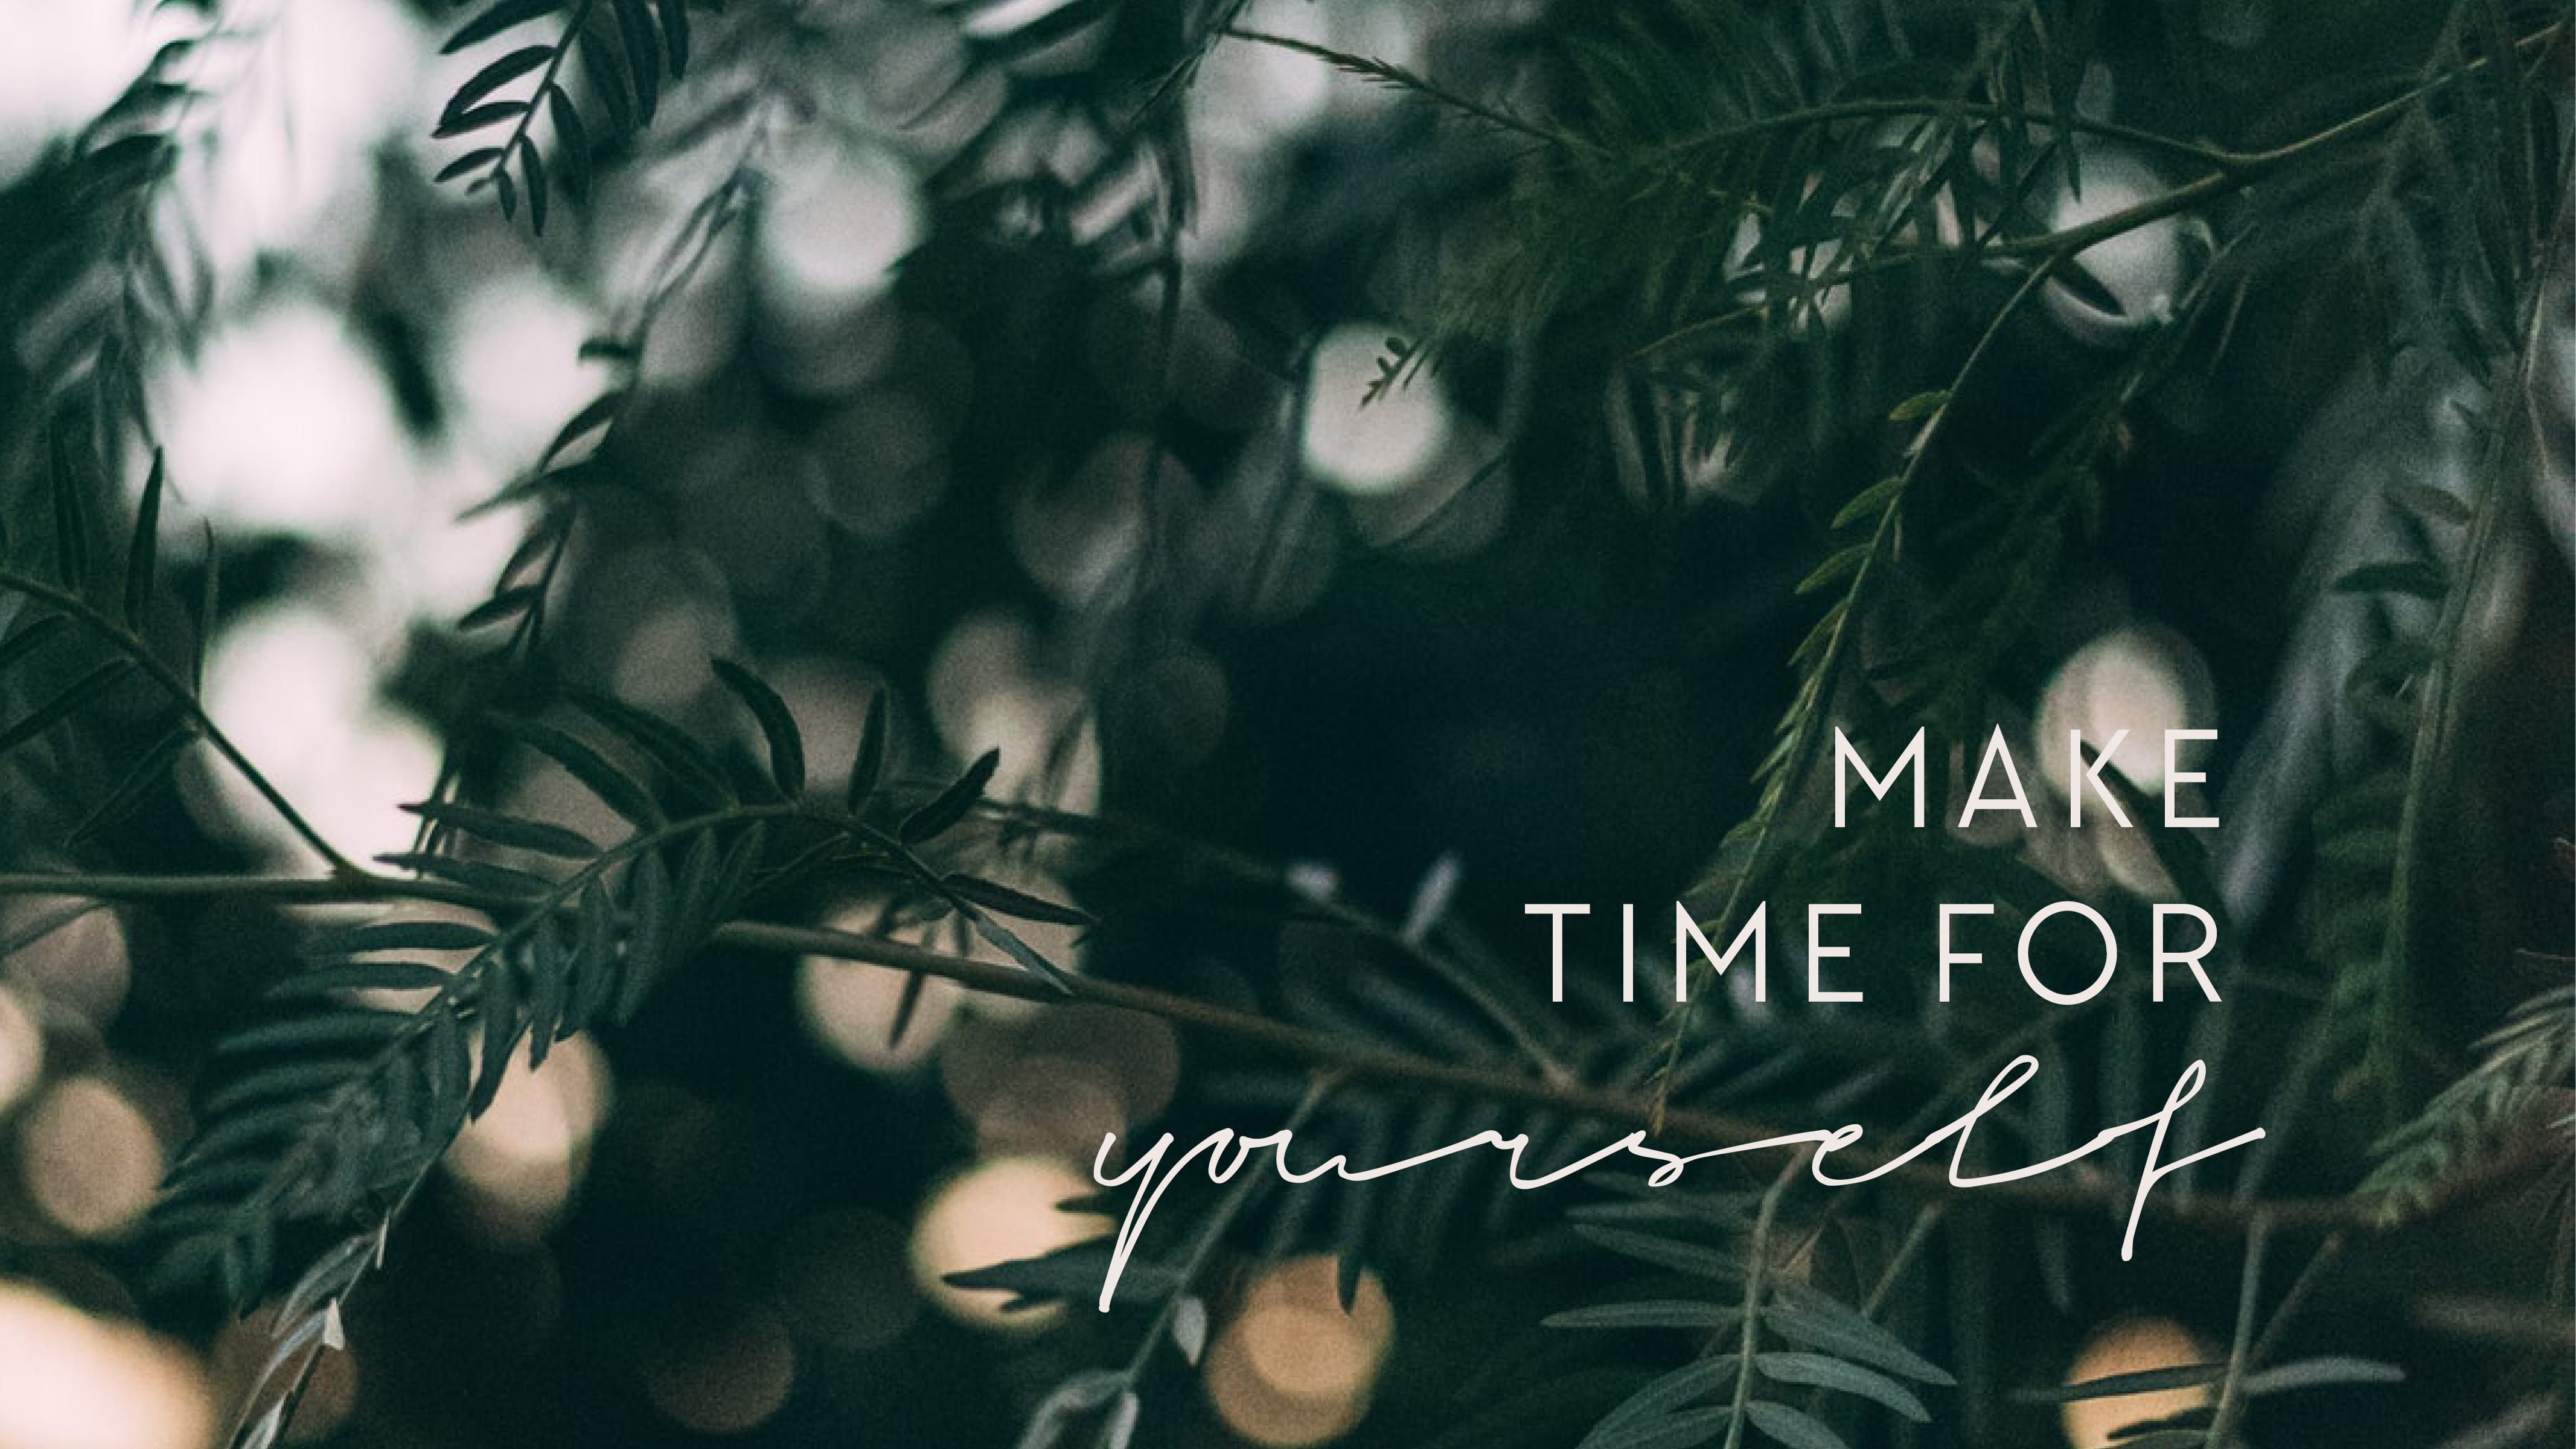 Free Wallpapers Discover new Designs every Month